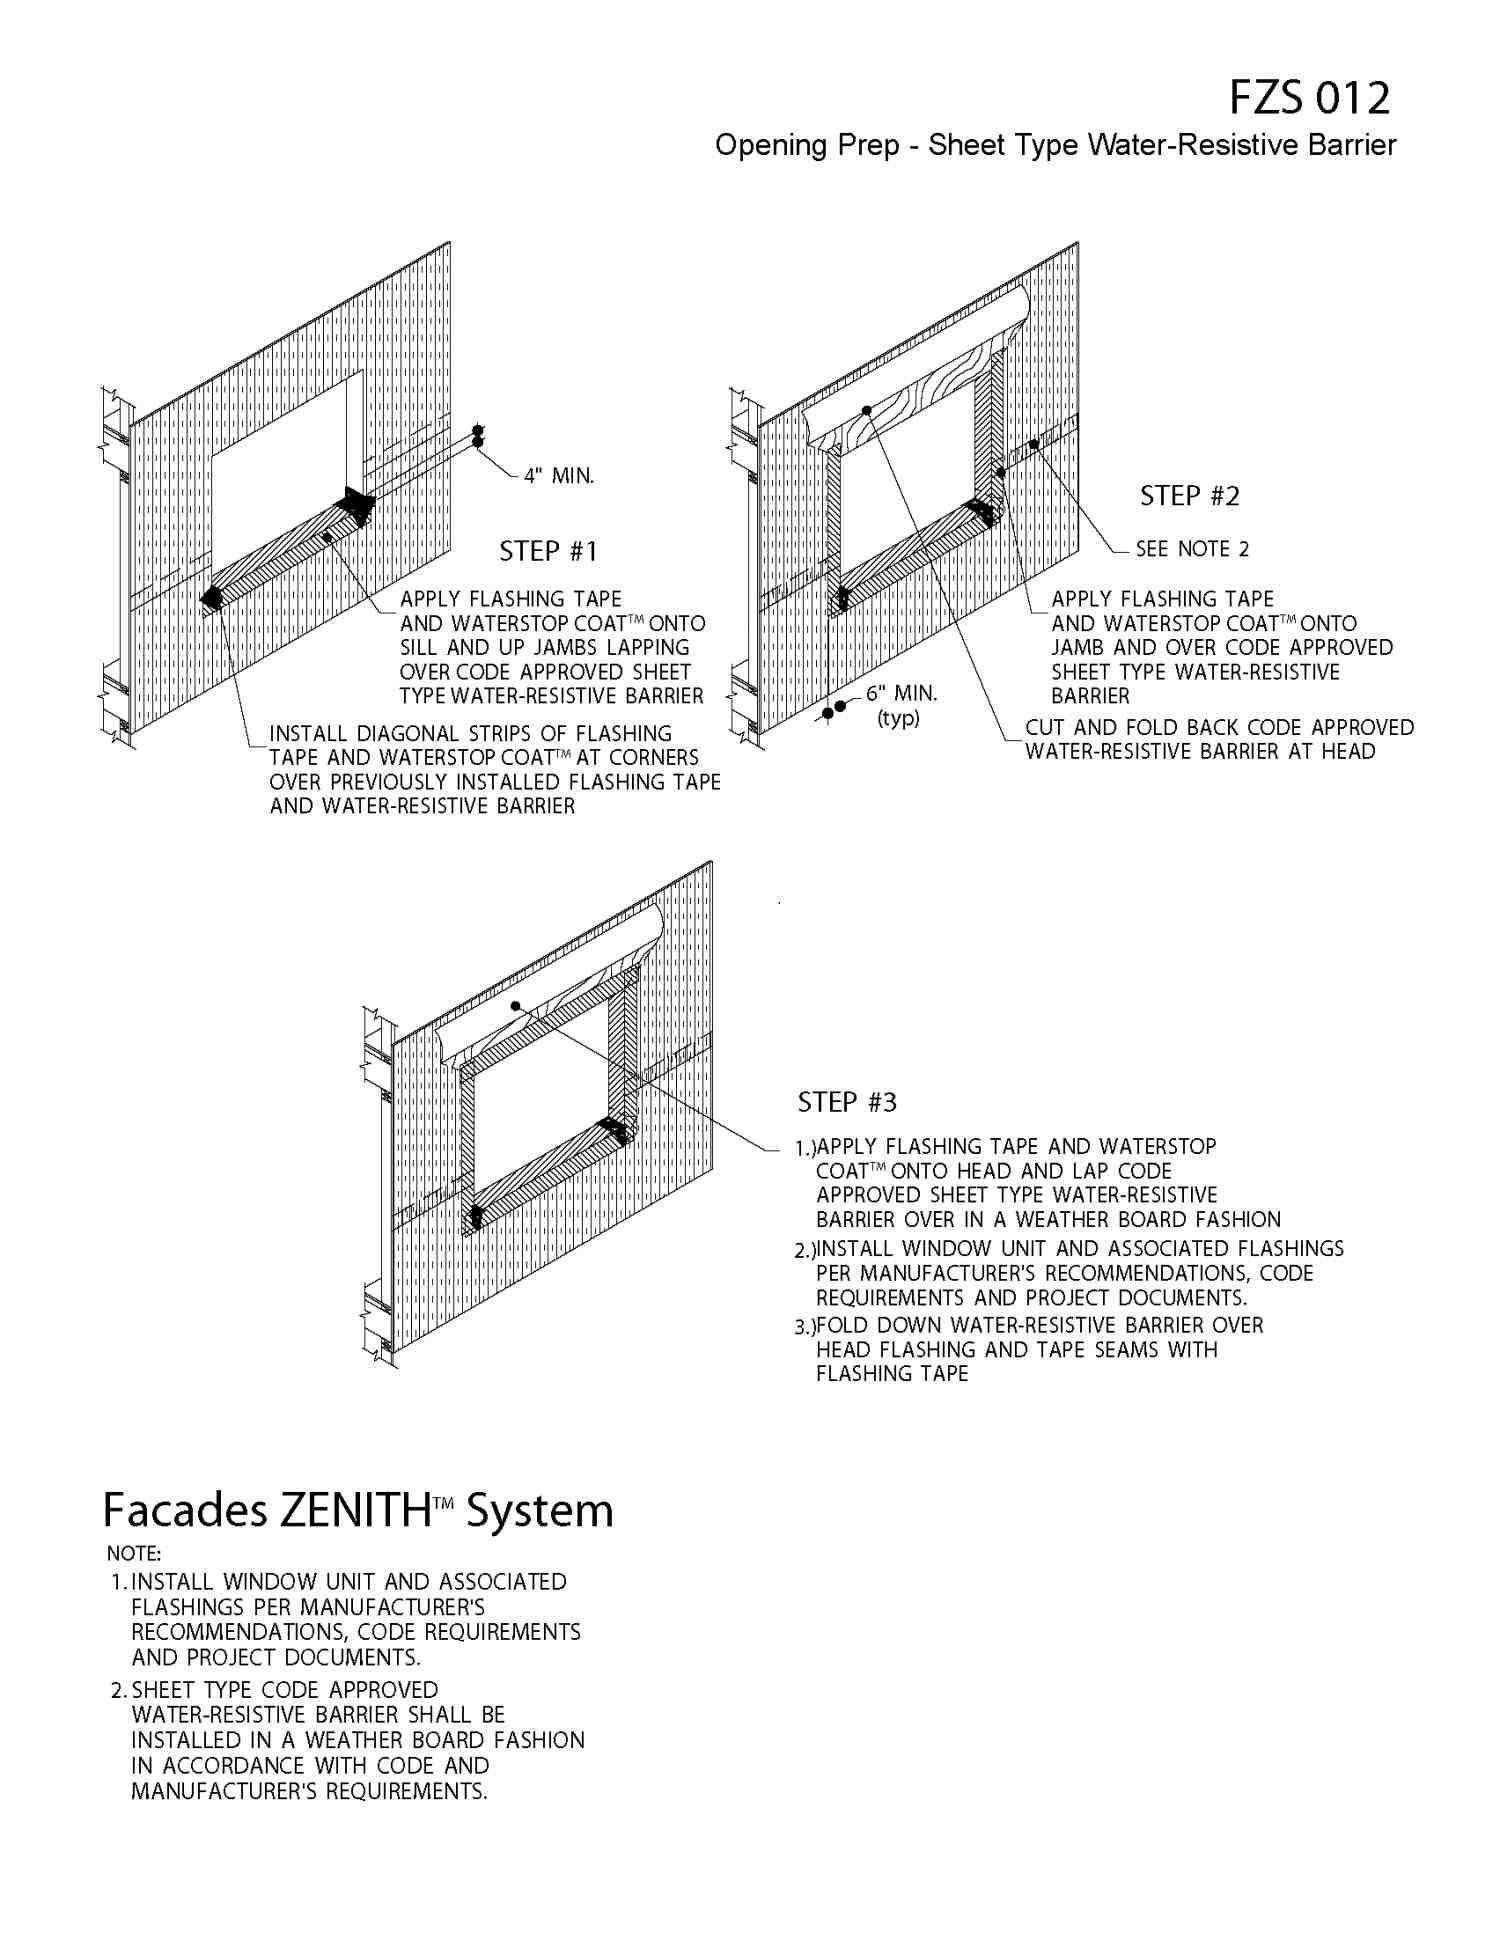 How to install window flashing tape - Eifs Wall Flashing Detail Yahoo Image Search Results